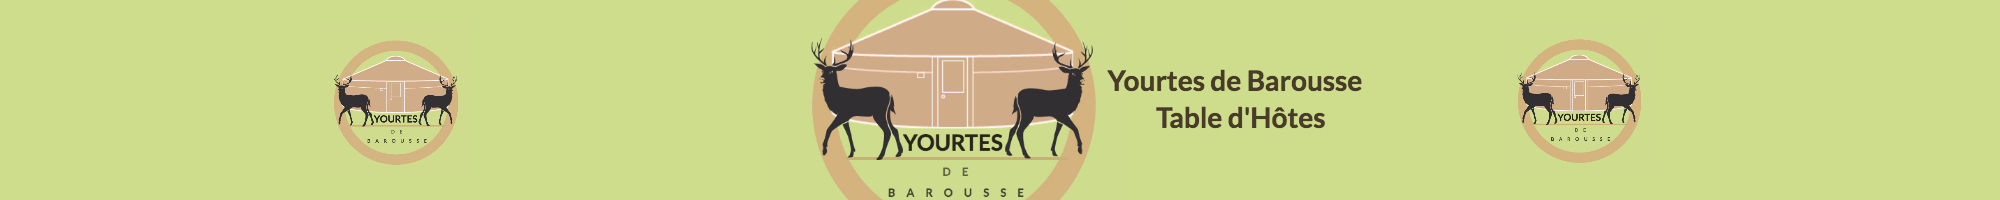 Yourtes de Barousse - Table d'Hôtes